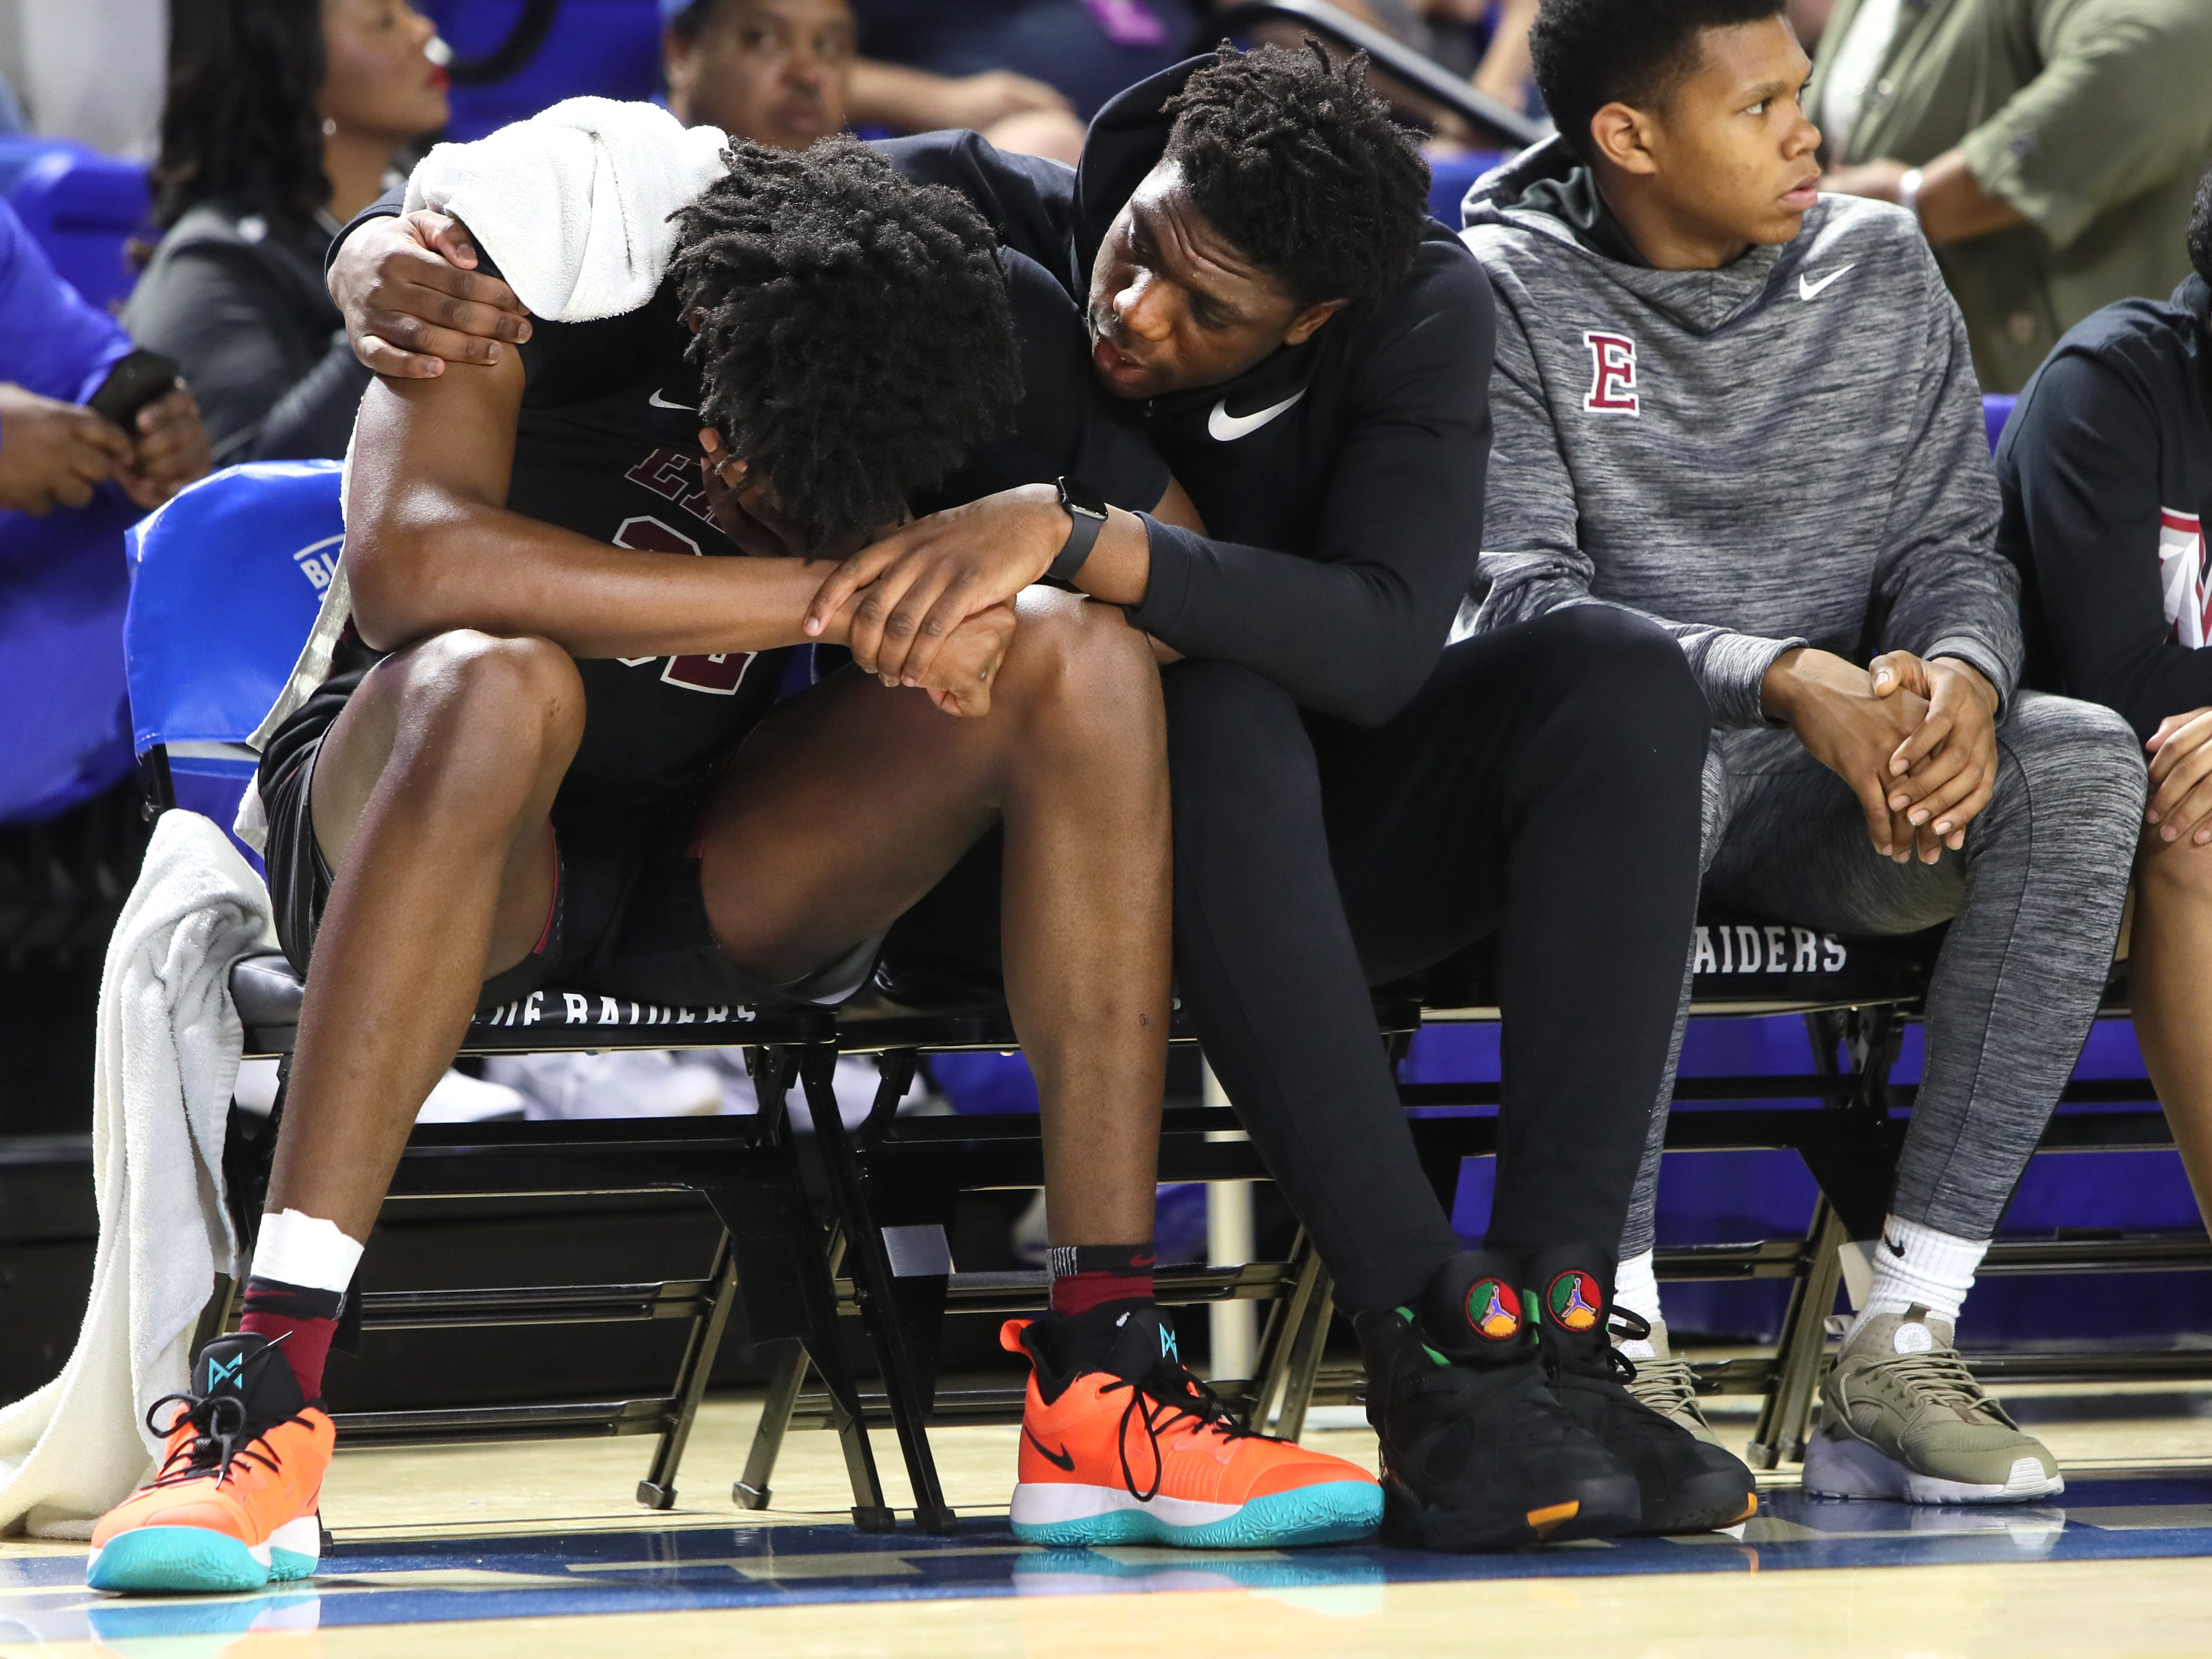 Memphis East's Malcolm Dandridge, right, holds James Wiseman as he shows his emotion while the Mustangs fall 83-68 to Bearden during the Class AAA boys basketball state championship game at the Murphy Center in Murfreesboro, Tenn. on Saturday, March 16, 2019.